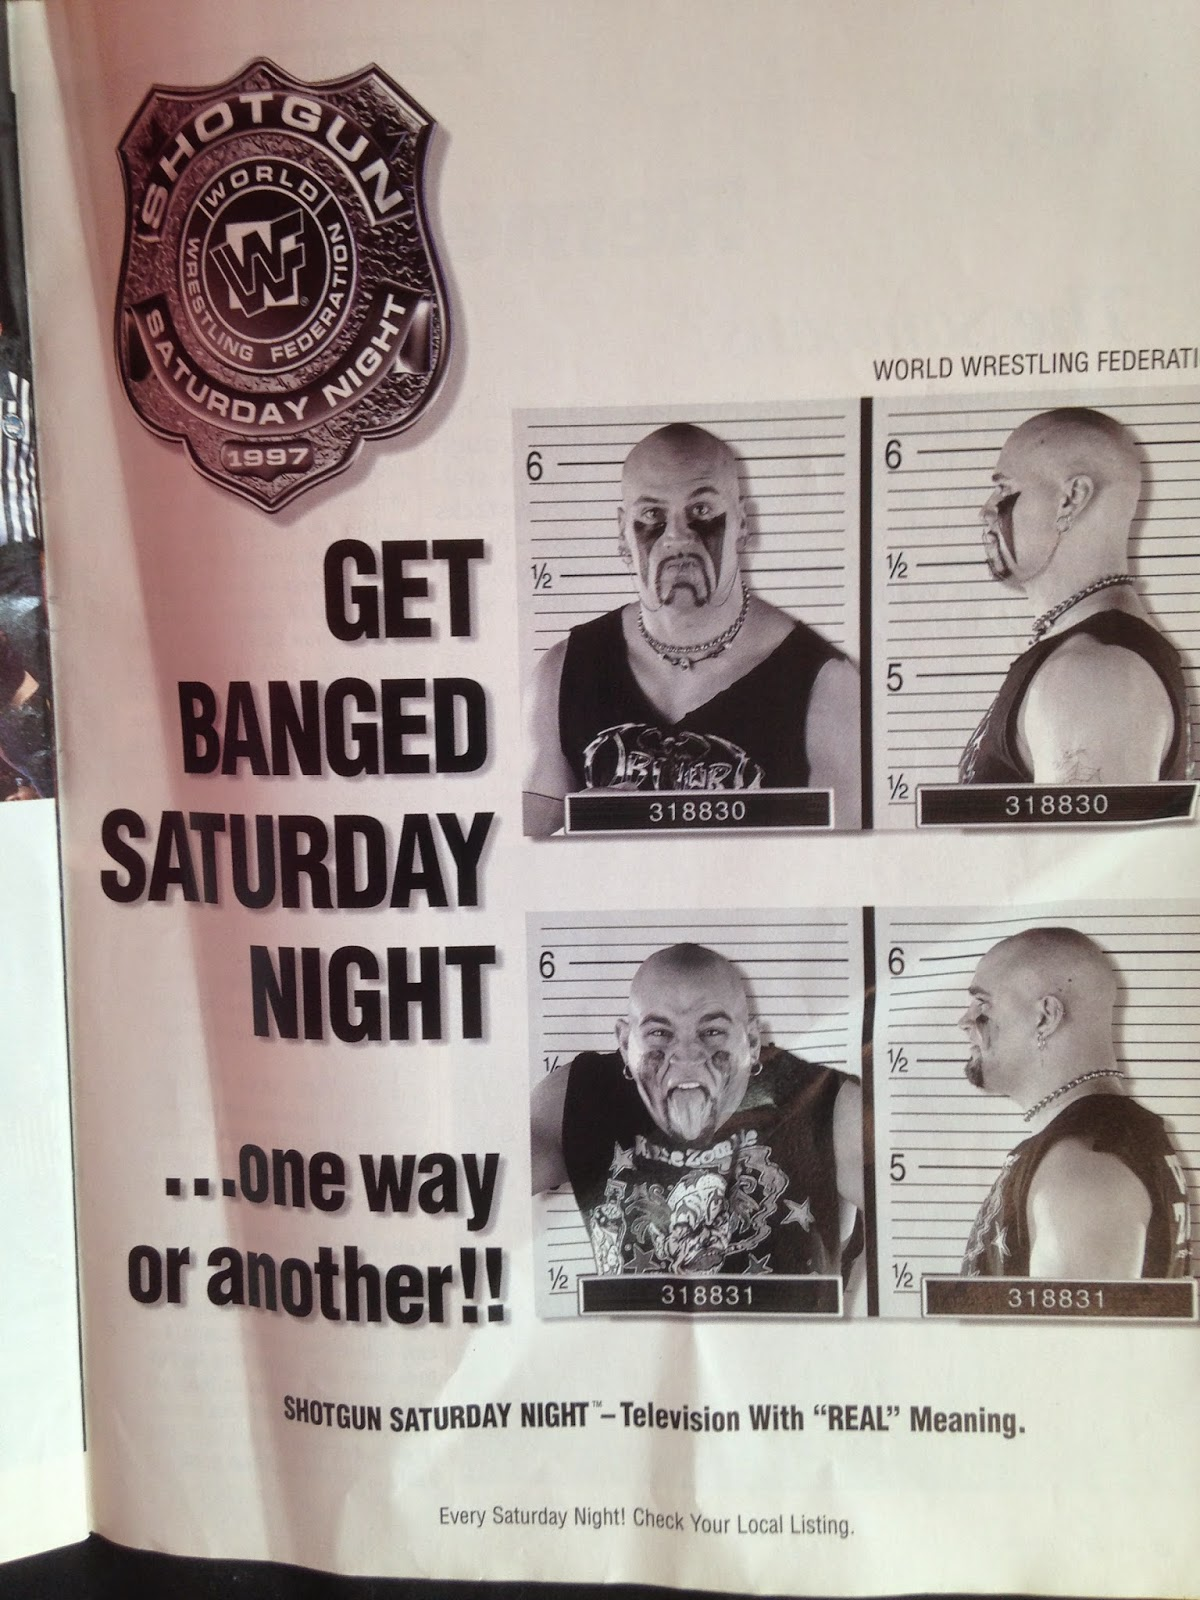 WWE - WWF Raw Magazine - April 1998 - Shotgun Saturday Night ad featuring The Headbangers